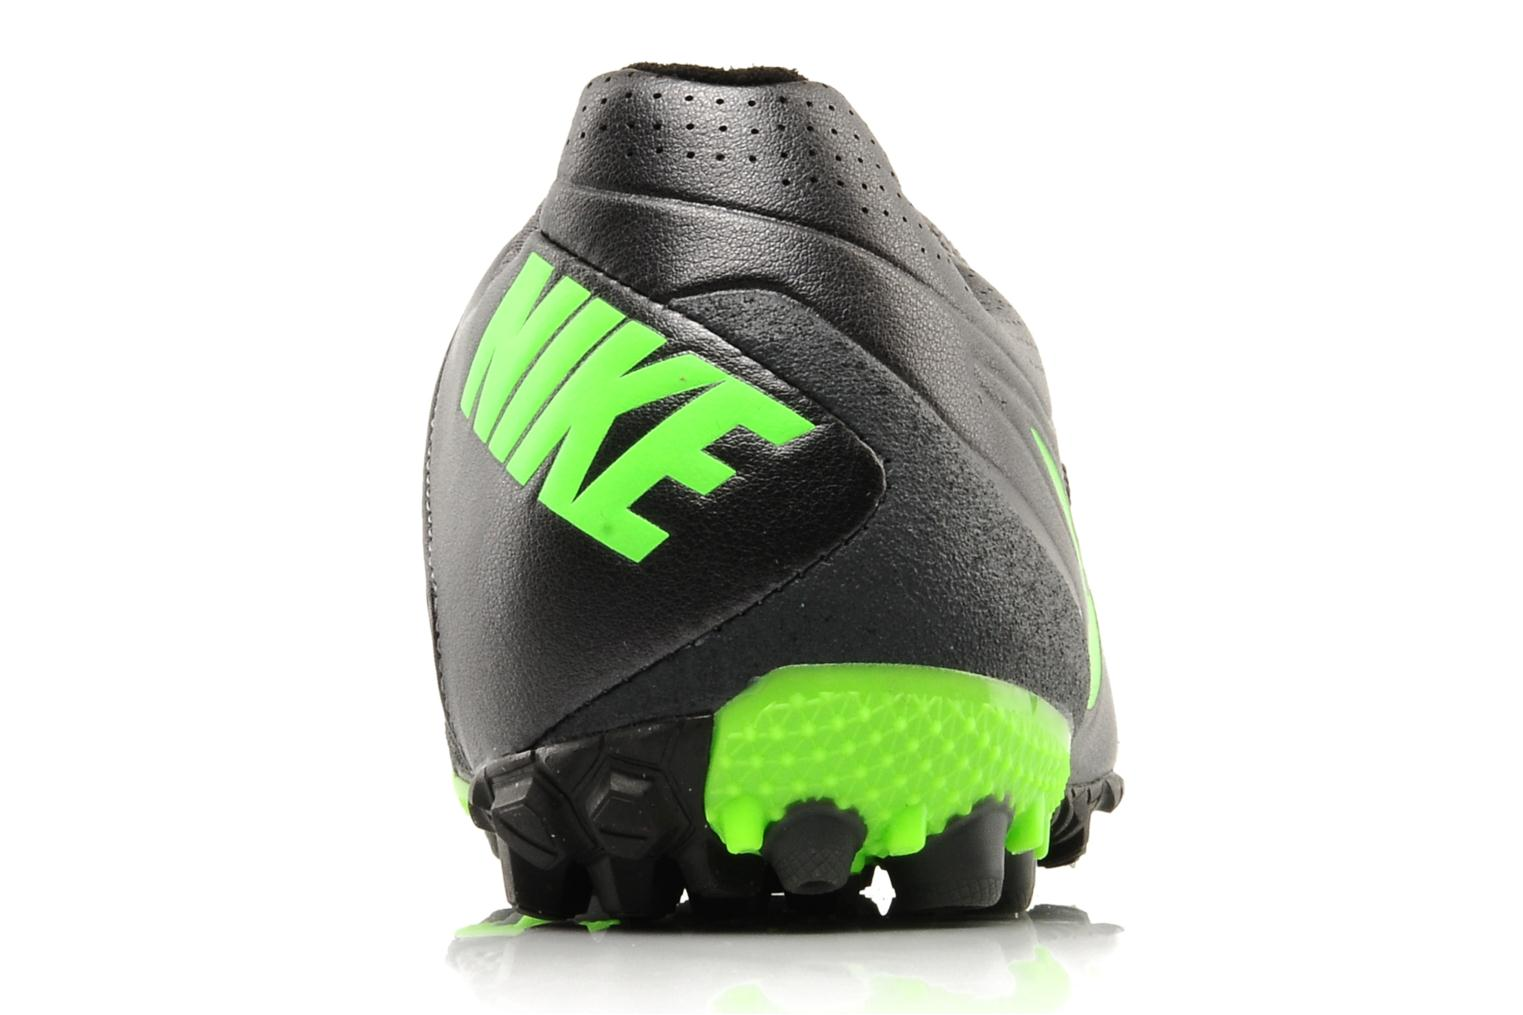 Nike bomba finale Mtlc fark grey/electric green